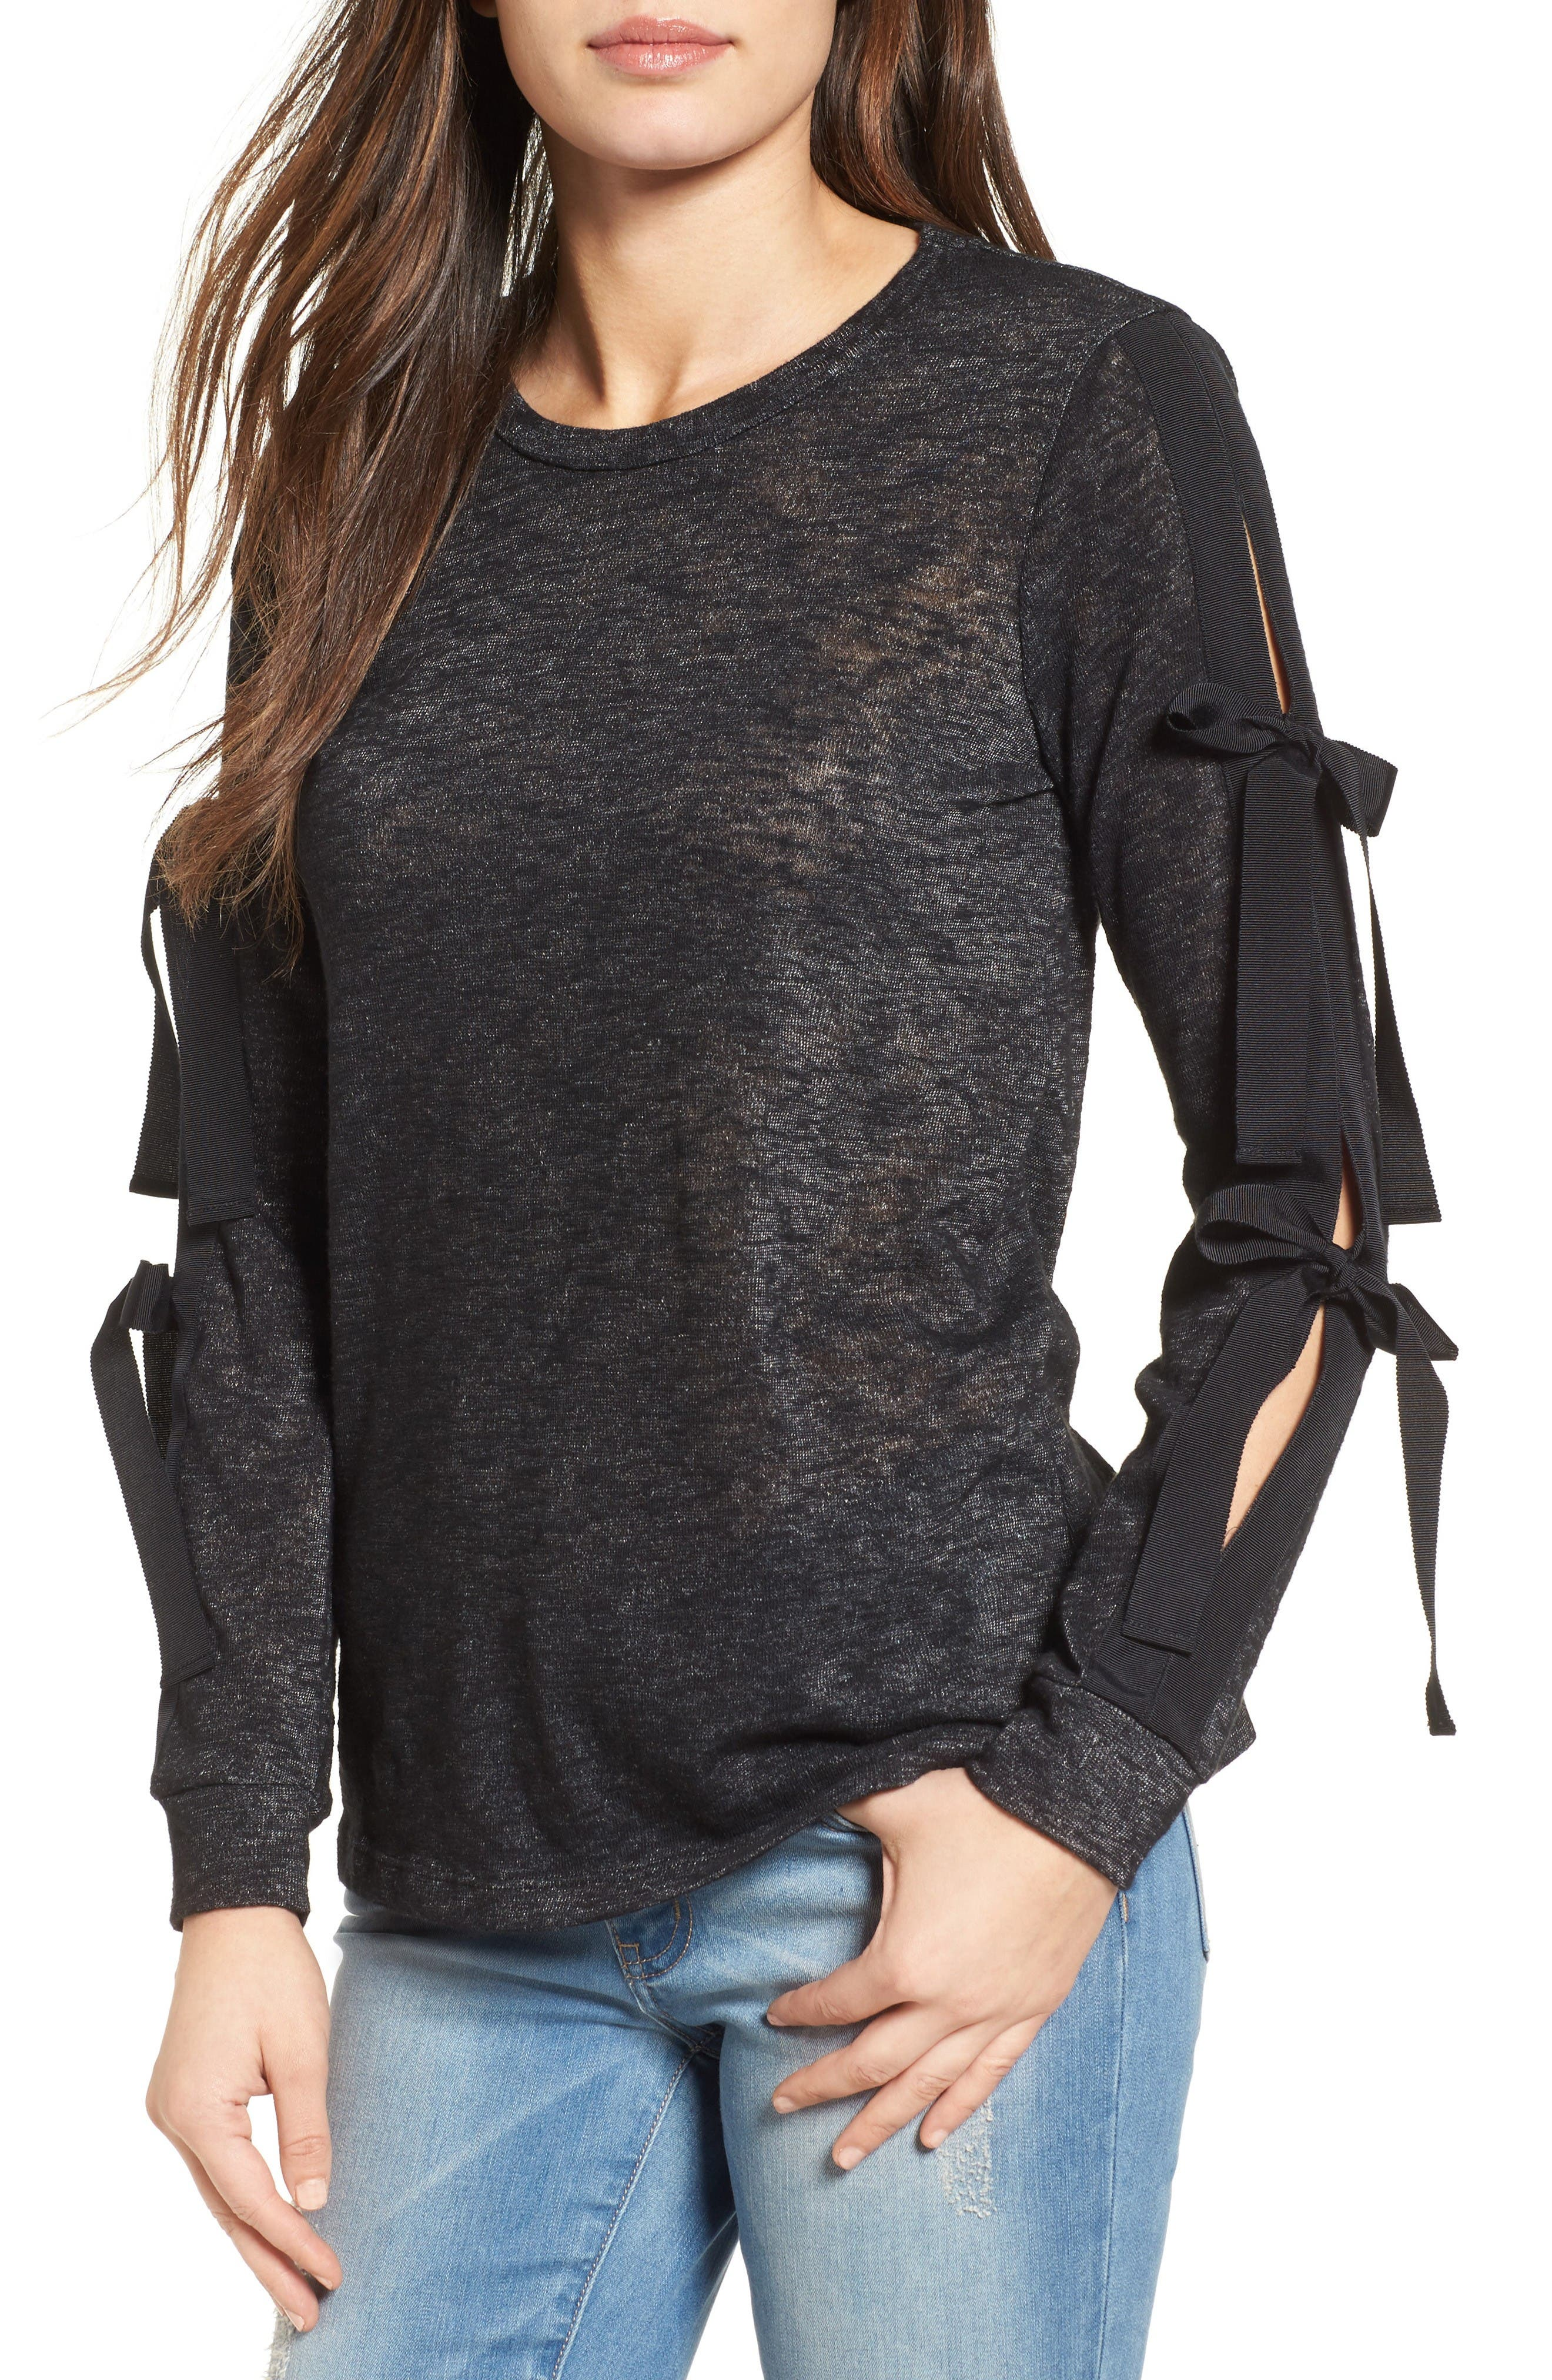 Alternate Image 1 Selected - Pleione Ribbon Tie Sleeve Knit Top (Regular & Petite)